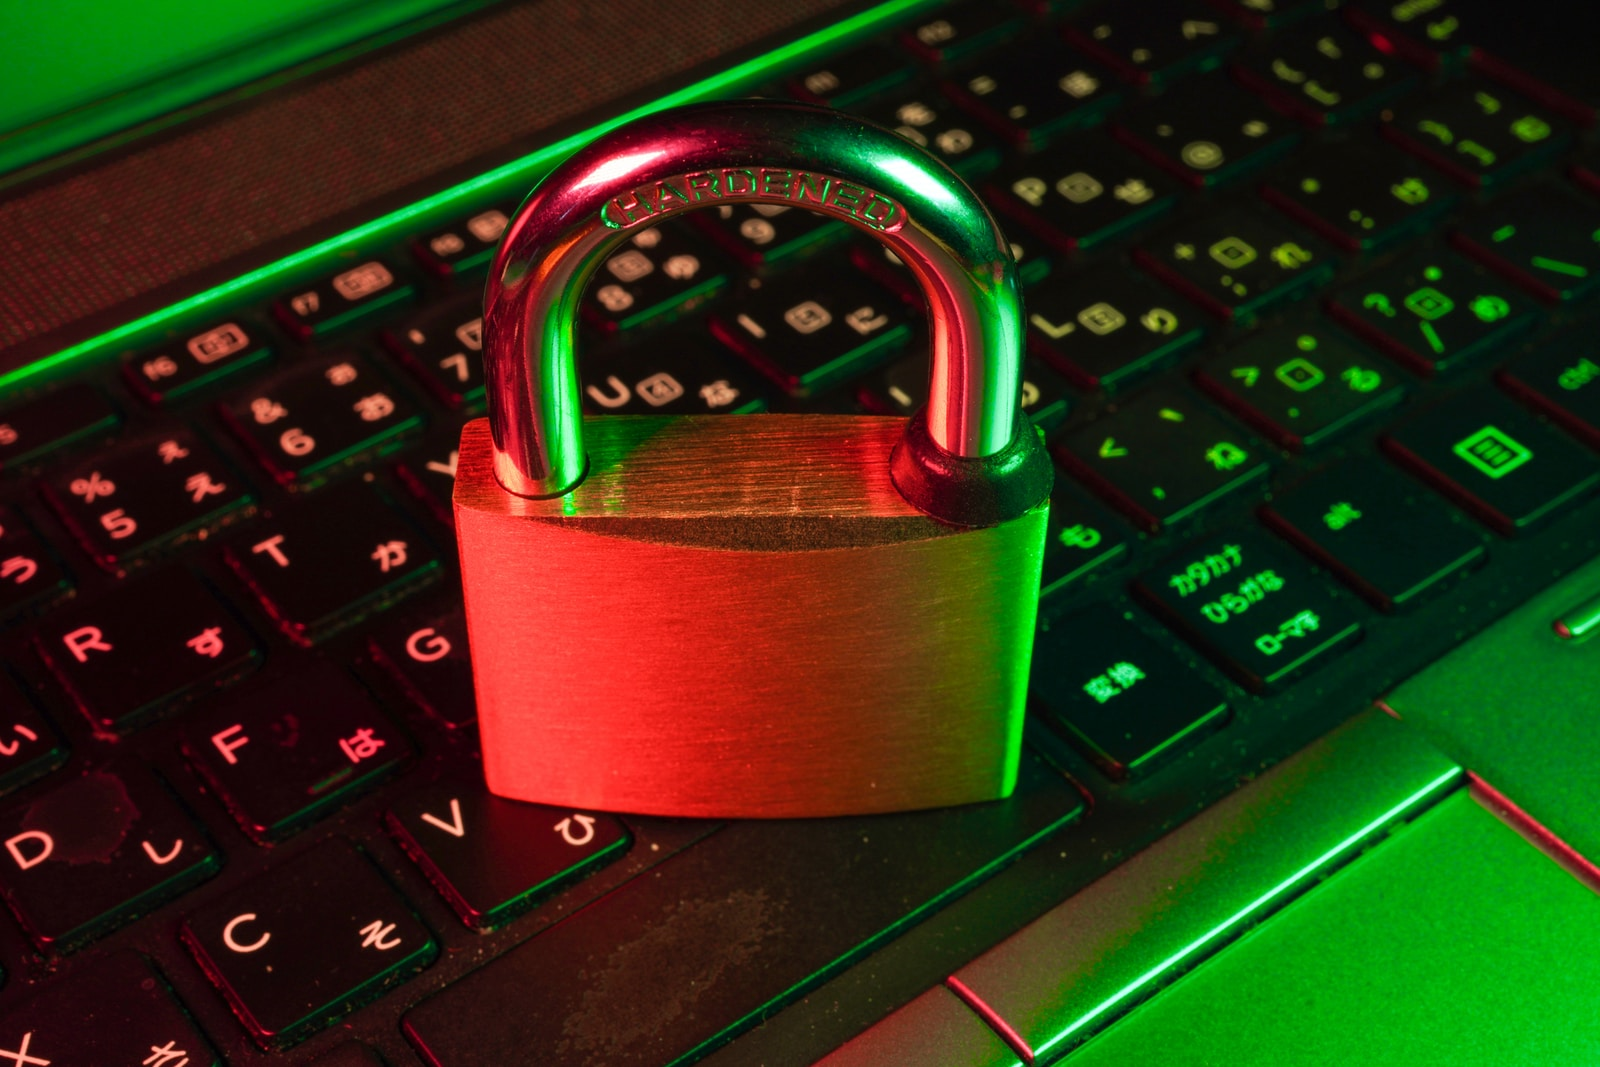 Know about possible WordPress vulnerabilities in advance